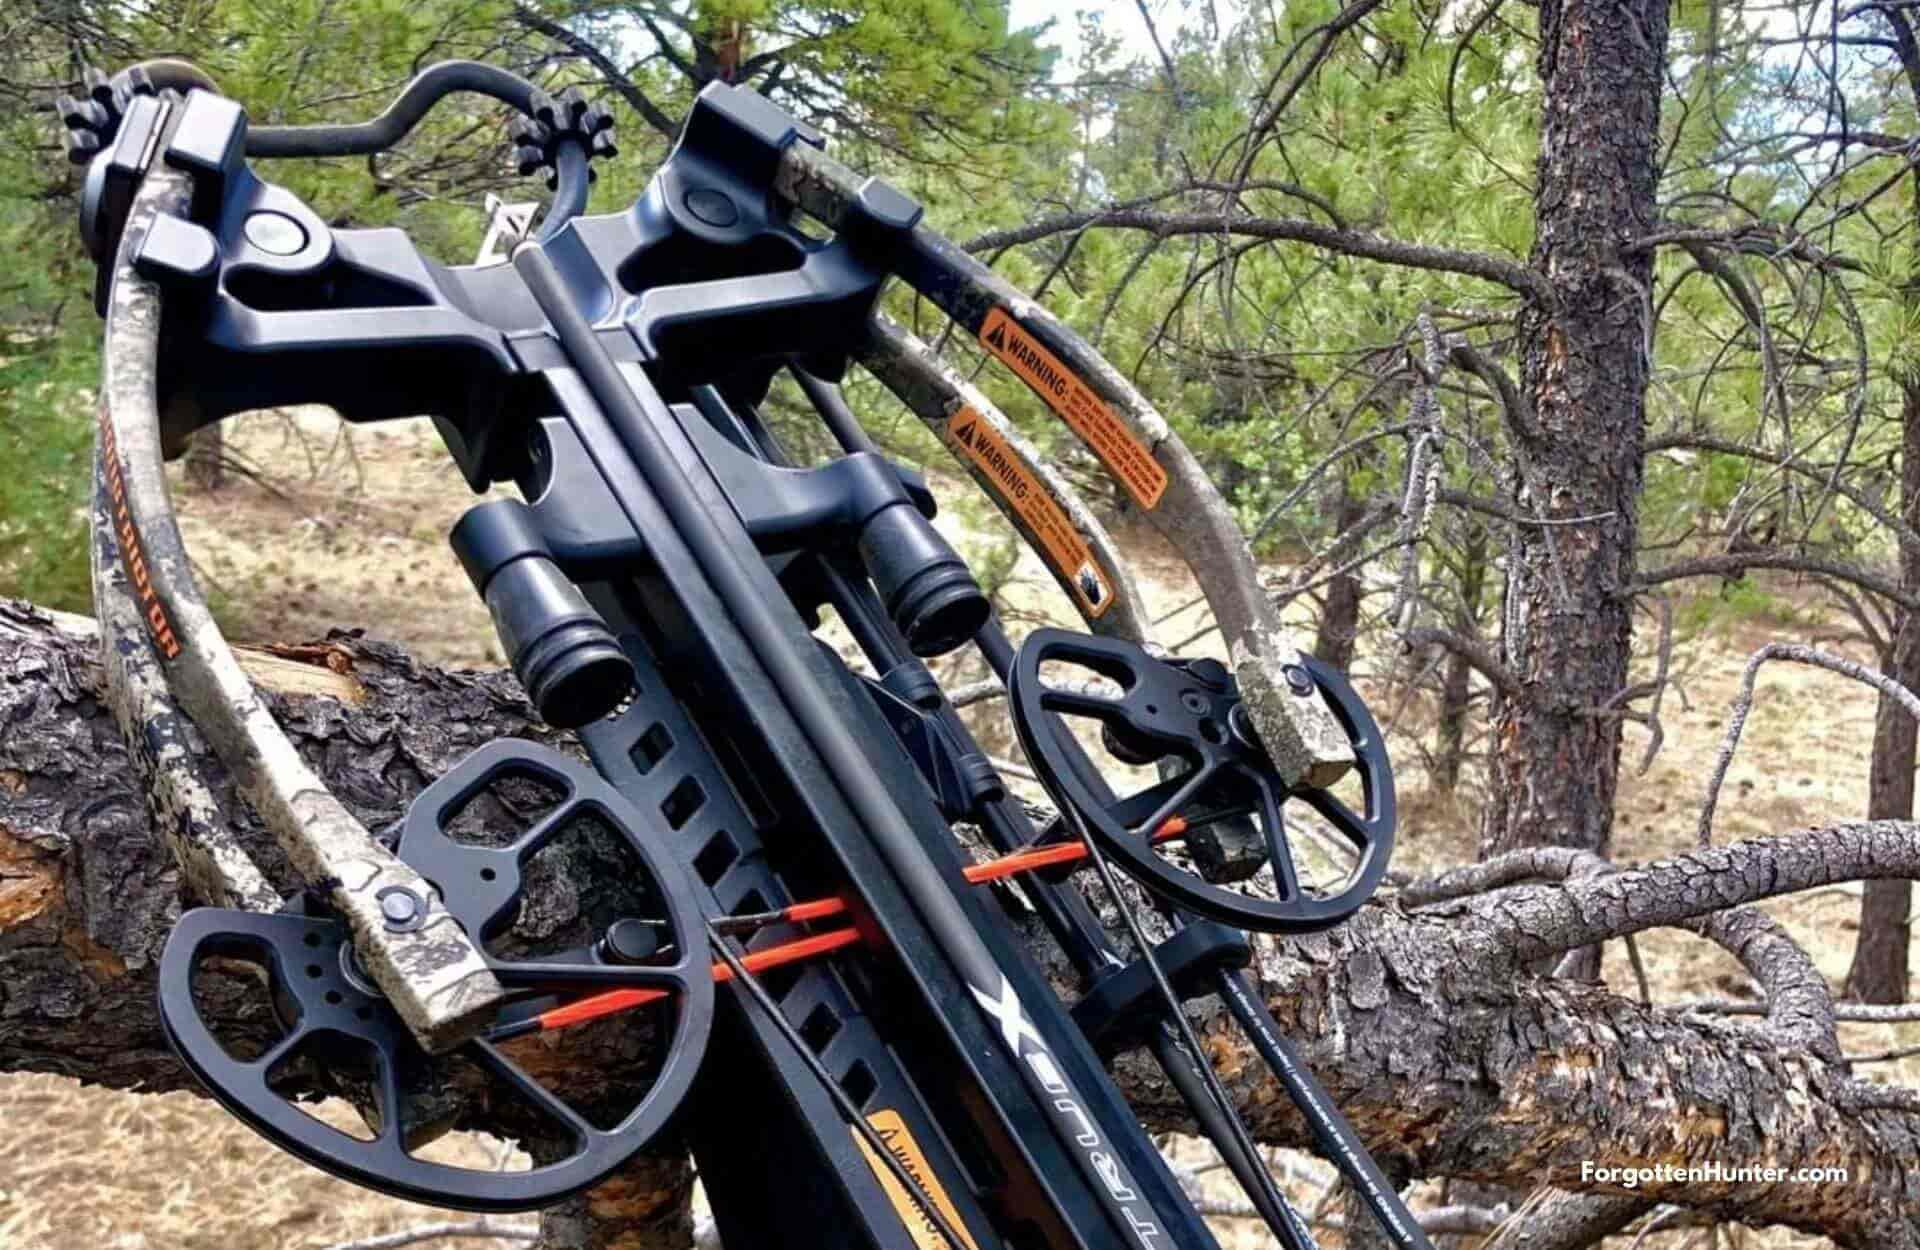 Bear X Constrictor CDX Review - Adjustable and Silent 410 FPS Crossbow